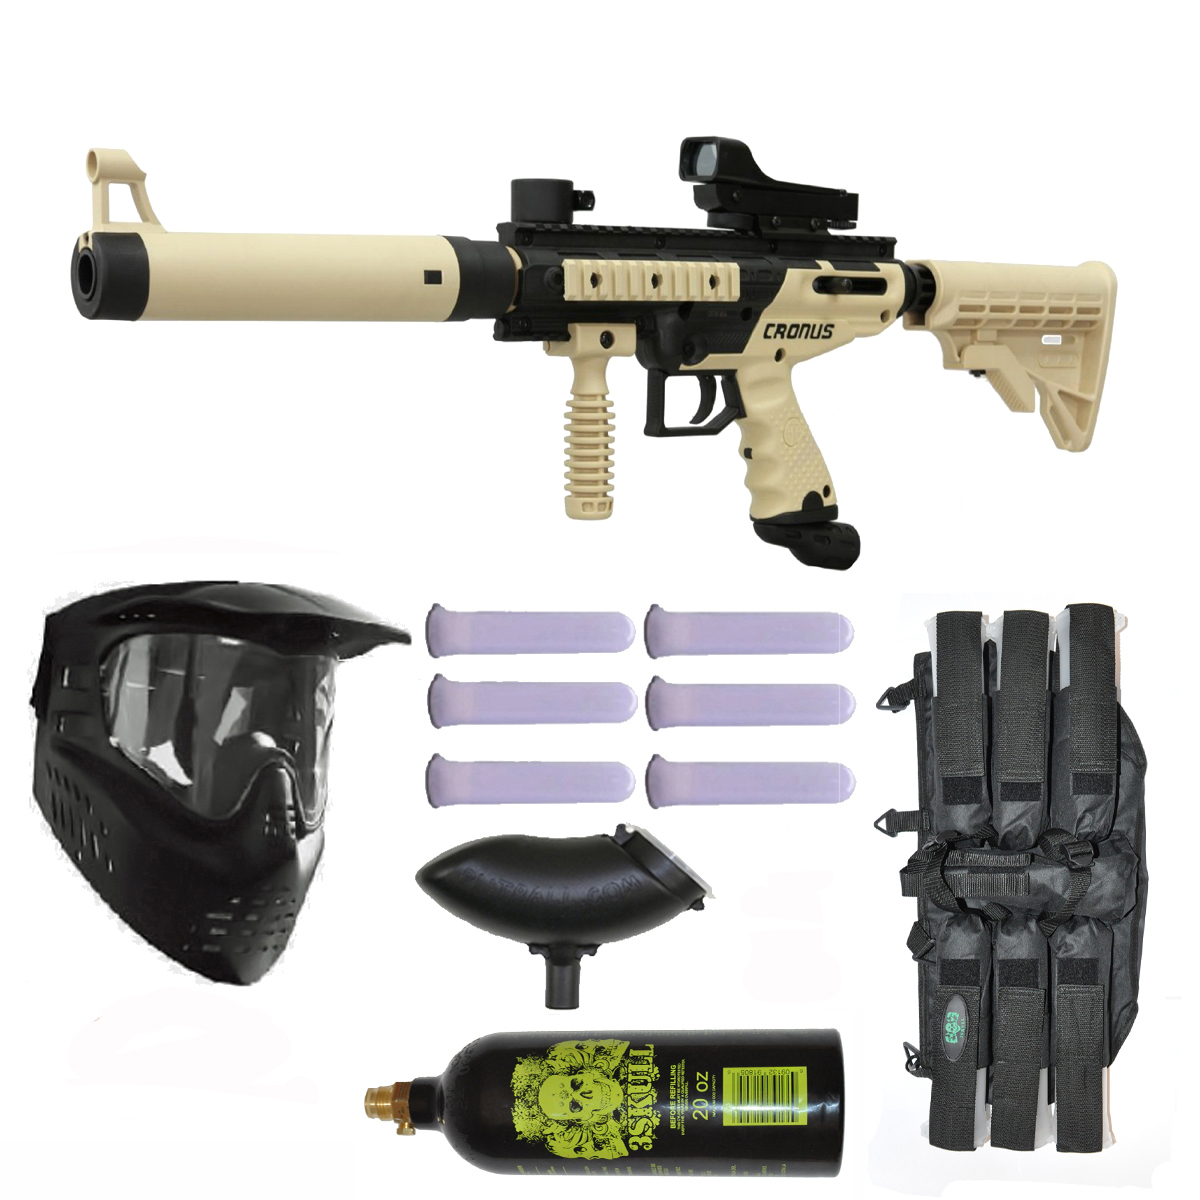 Click here to buy Tippmann Cronus Tactical Paintball Gun 3Skull Deluxe Set.